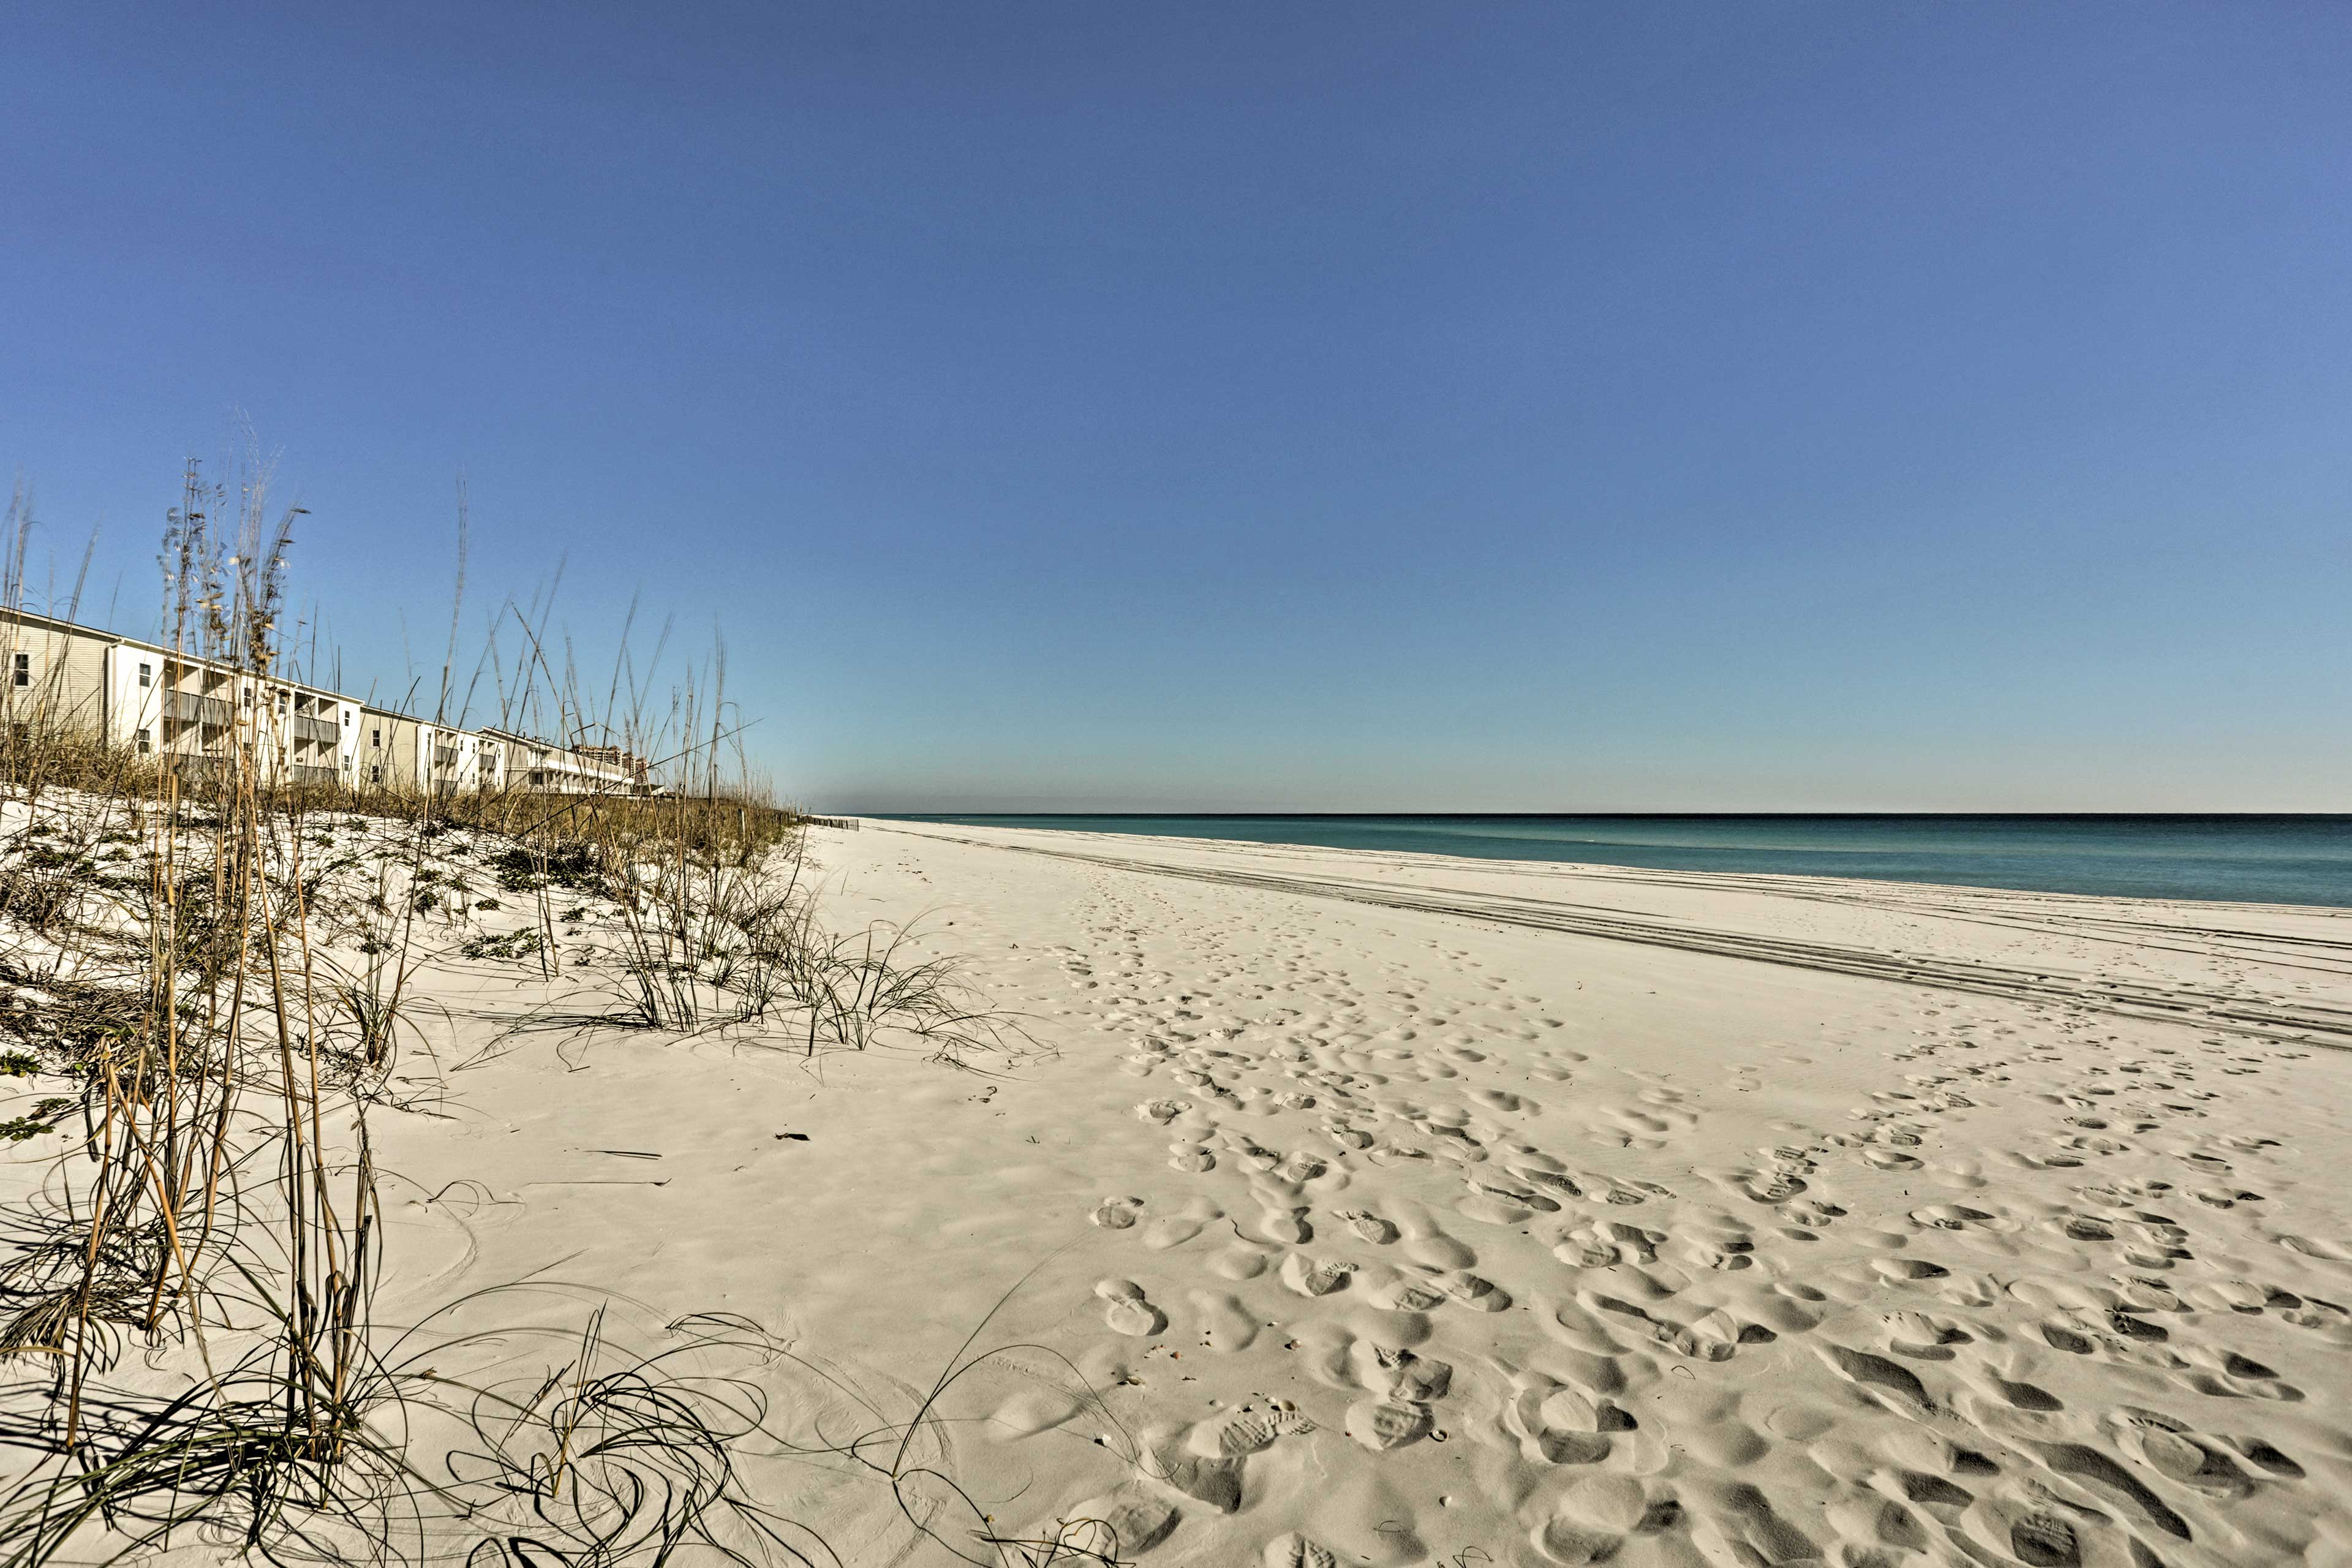 You'll be just steps away from having your toes in the sand.